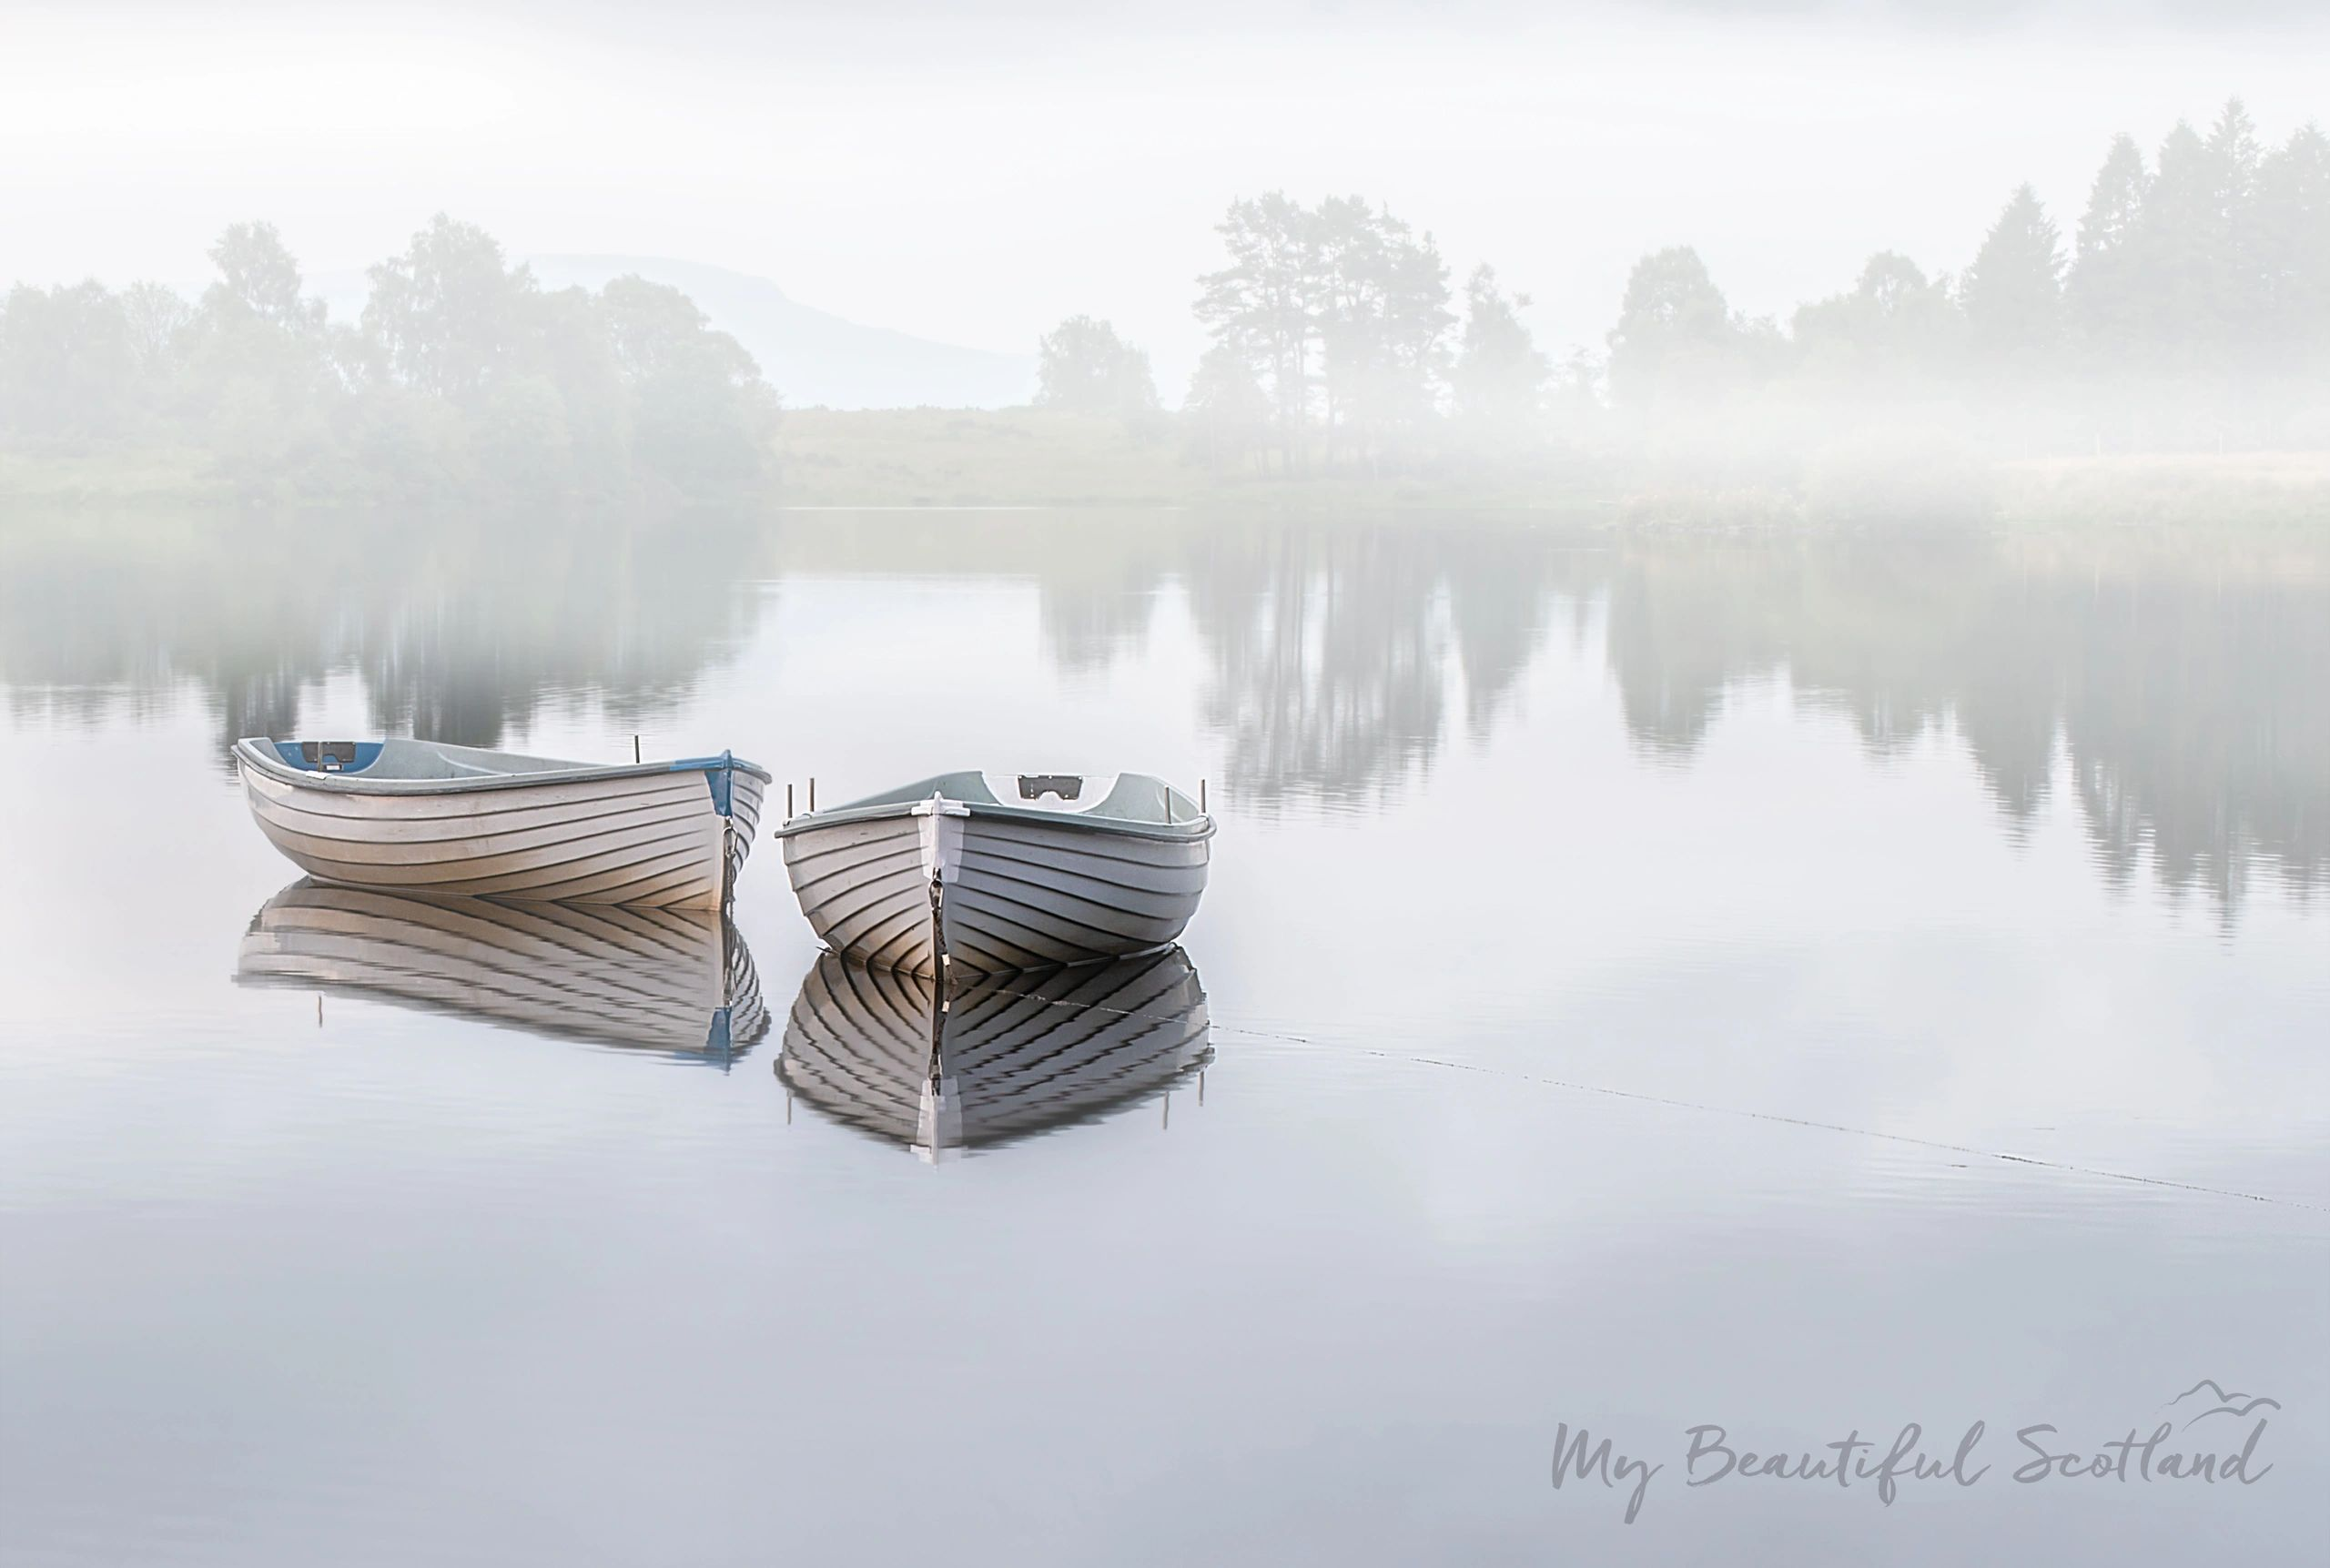 "{""blocks"":[{""key"":""6sutn"",""text"":""A misty morning at Loch Rusky, The Trossachs, My Beautiful Scotland (image ref: P1209)"",""type"":""unstyled"",""depth"":0,""inlineStyleRanges"":[],""entityRanges"":[],""data"":{}}],""entityMap"":{}}"